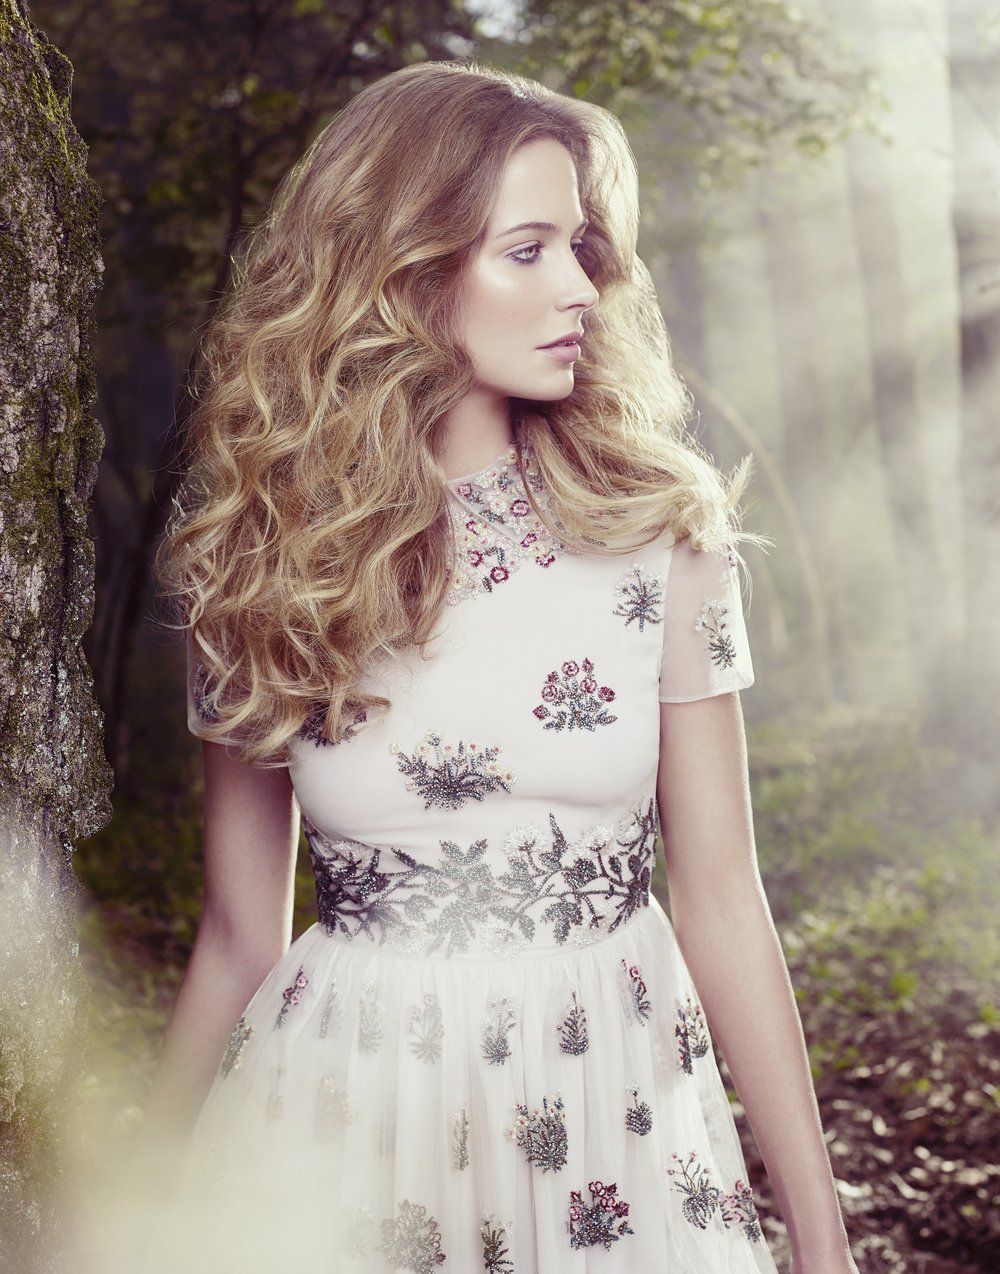 Blonde woman wearing white dress with floral rose and daisy design looking to the side in a meadow - Mark DeLong: Fashion Gallery